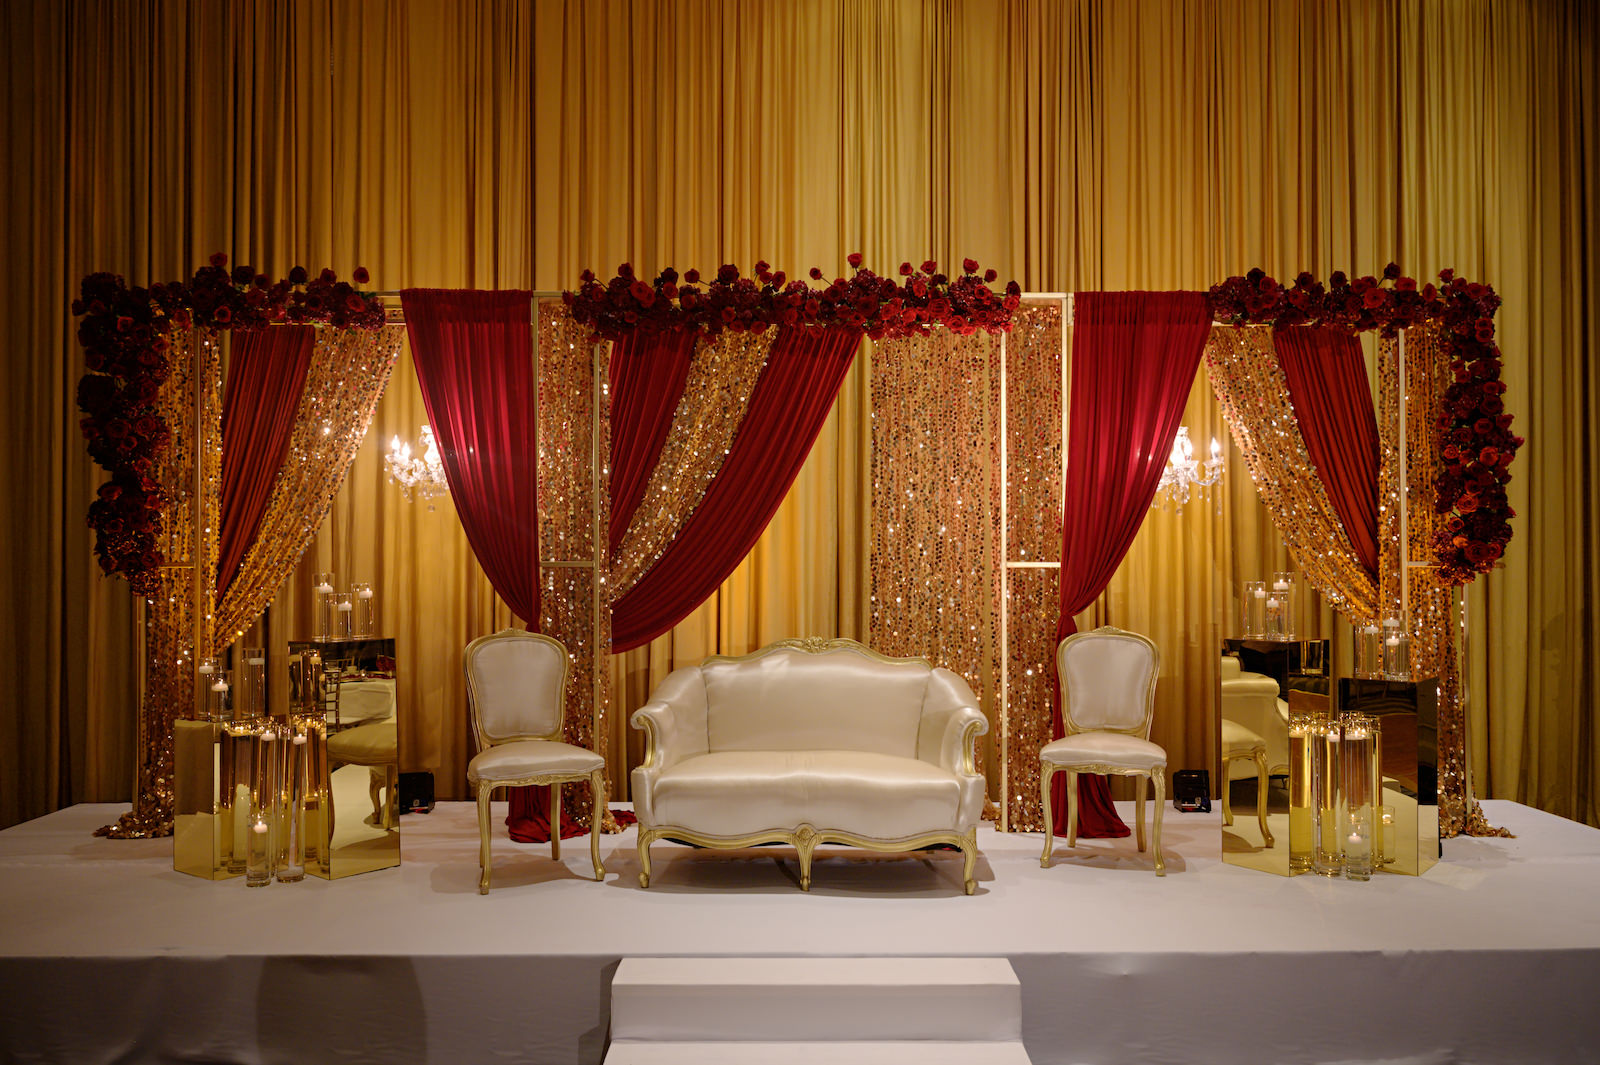 Elegant Florida Multicultural Indian Catholic Wedding Mandap with Burgundy Red Draping and Gold Sequin Backdrop, Wedding Reception Decor